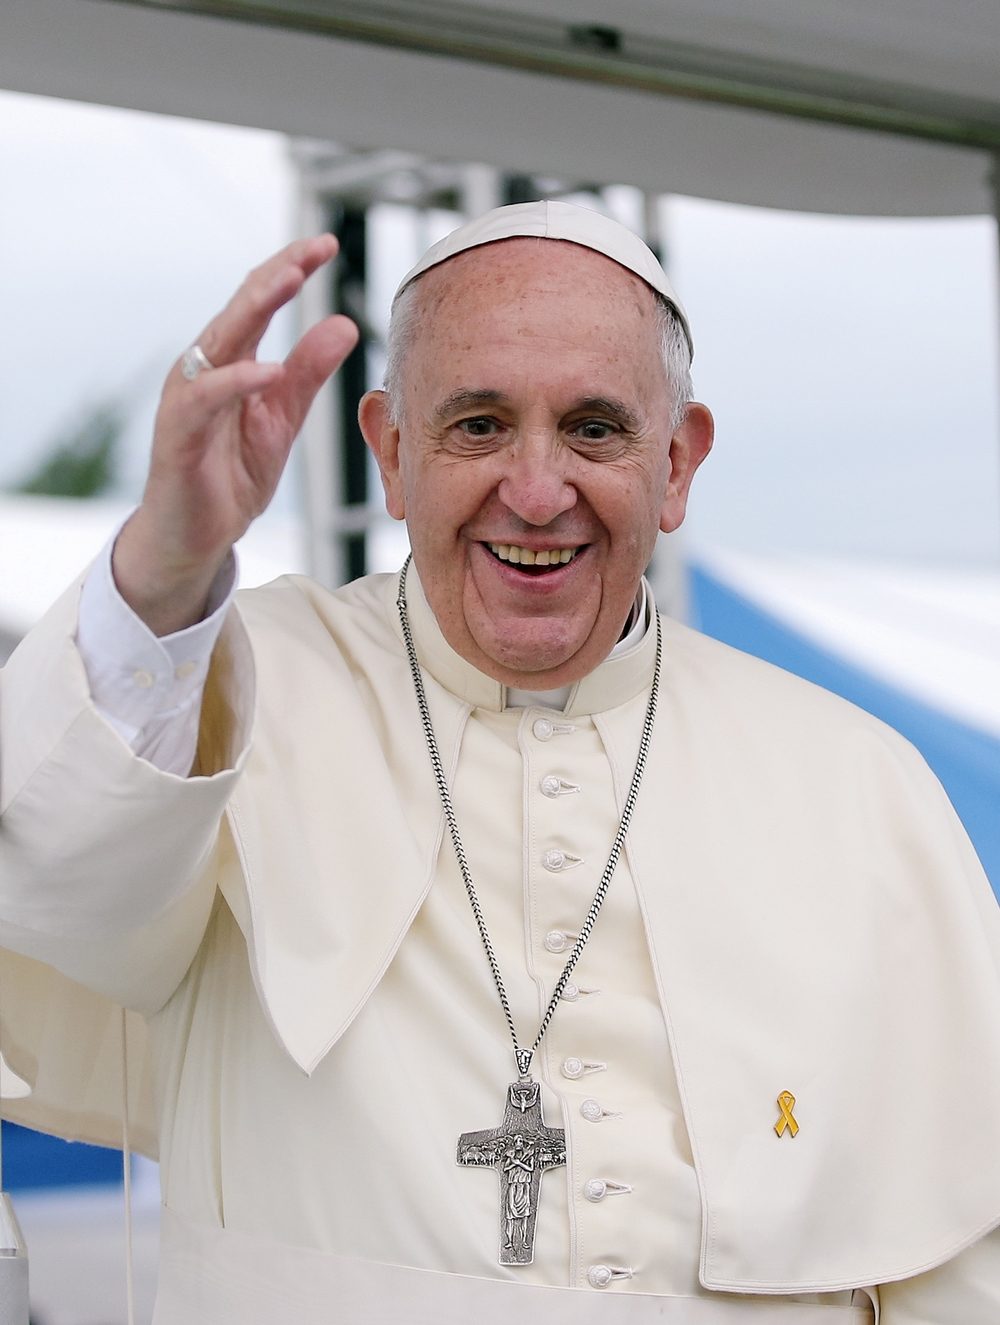 Pope Francis. Credit: Wikimedia Commons.